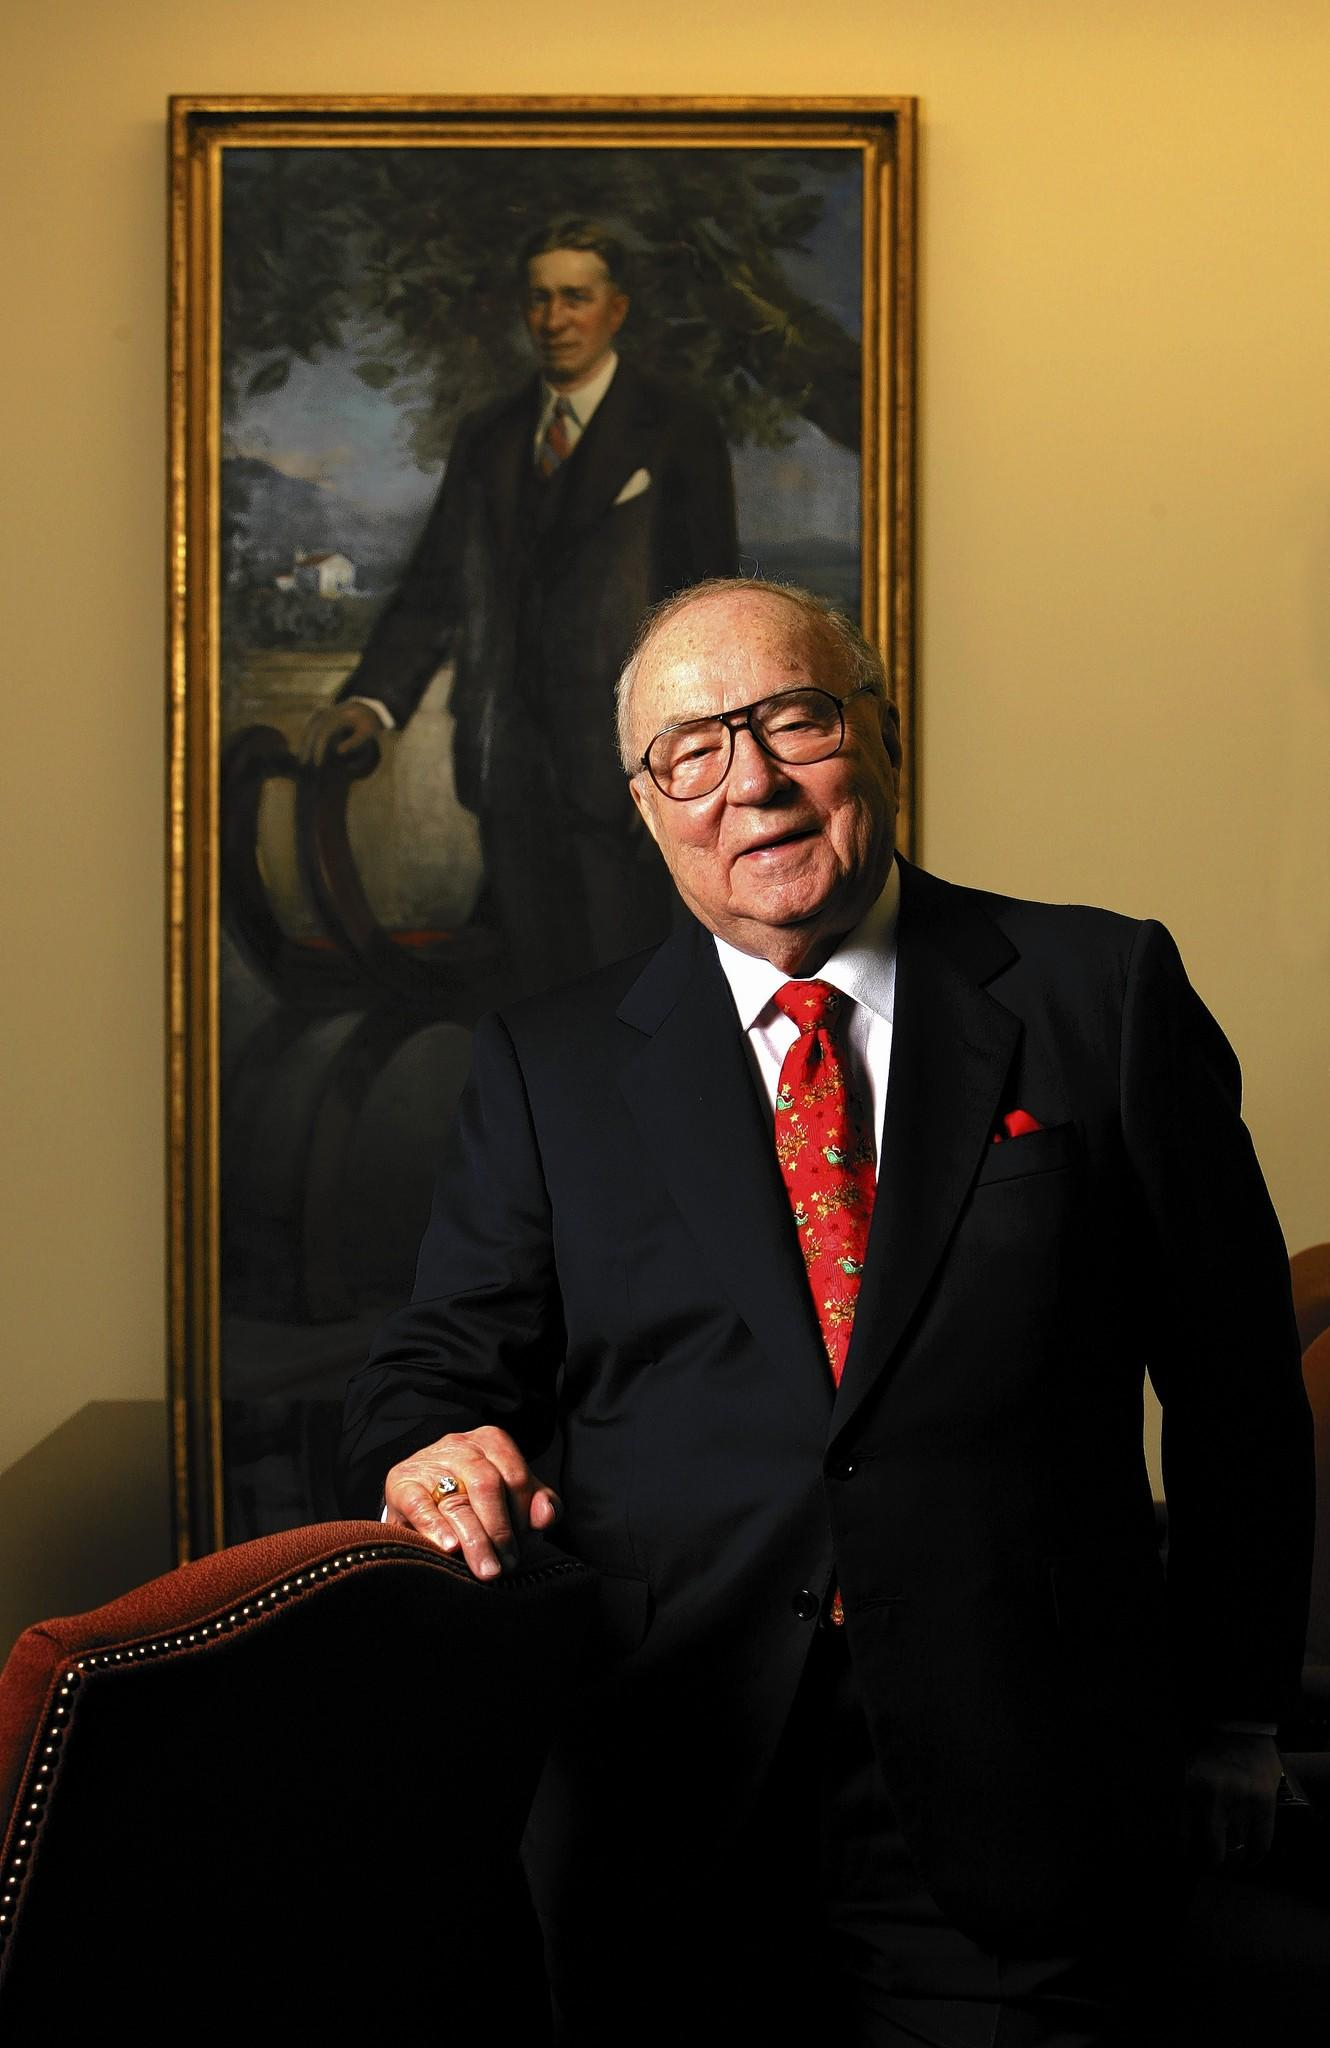 Portrait of Jeno Paulucci, founder of Michelina's Inc frozen foods and creator of Heathrow, Friday, December 15, 2006.